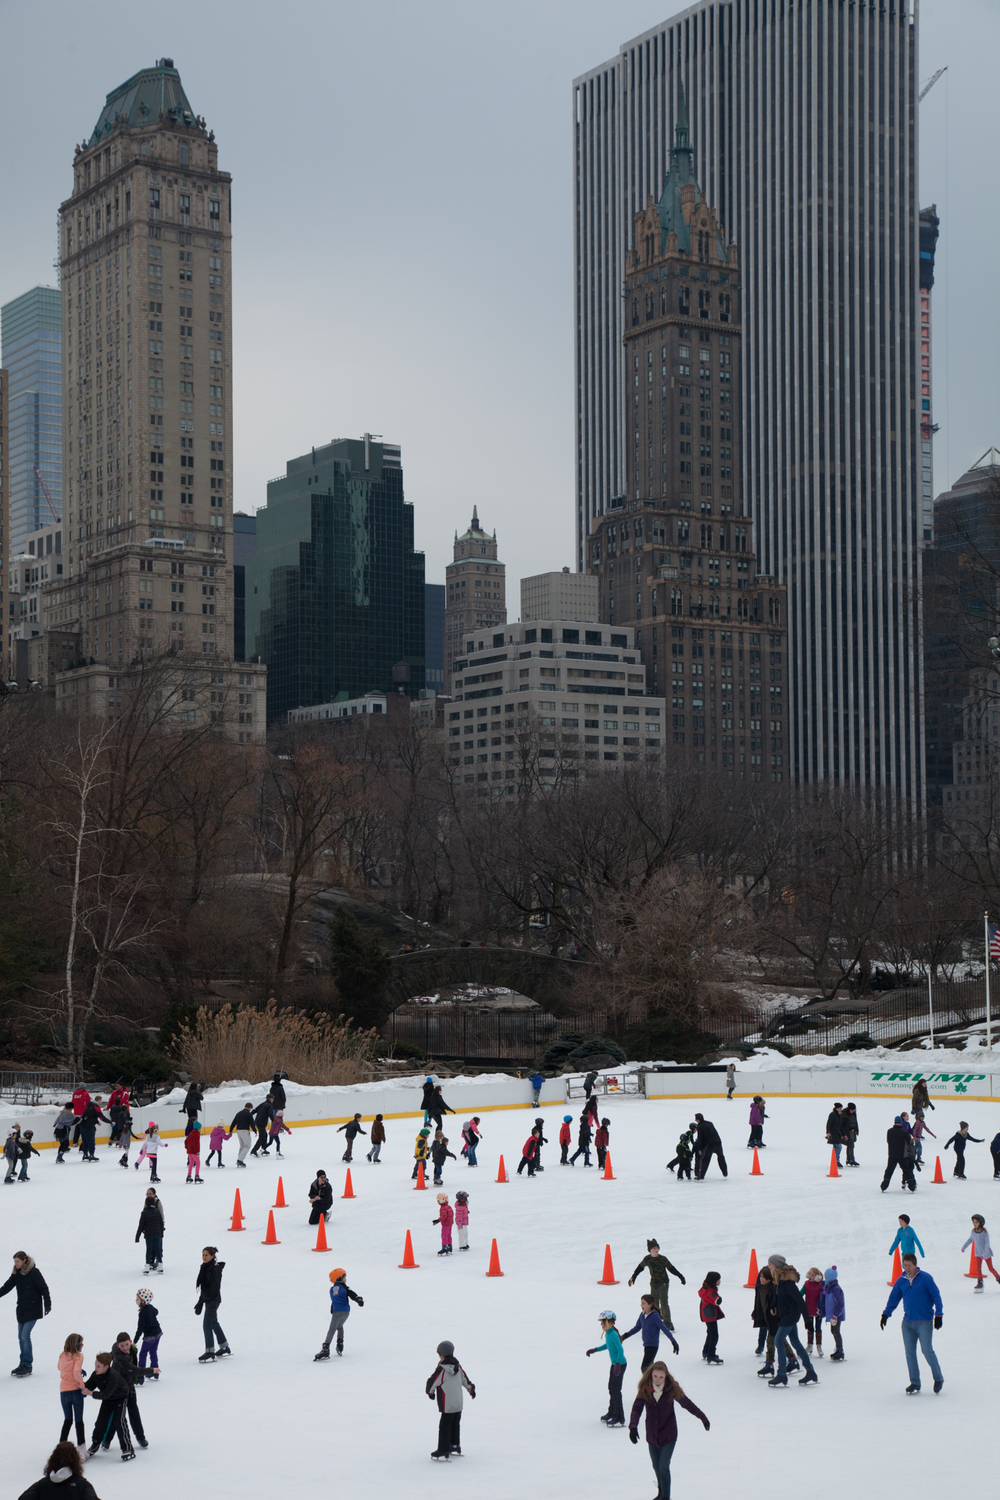 All the people skating on the Wollman Rink in Central Park.